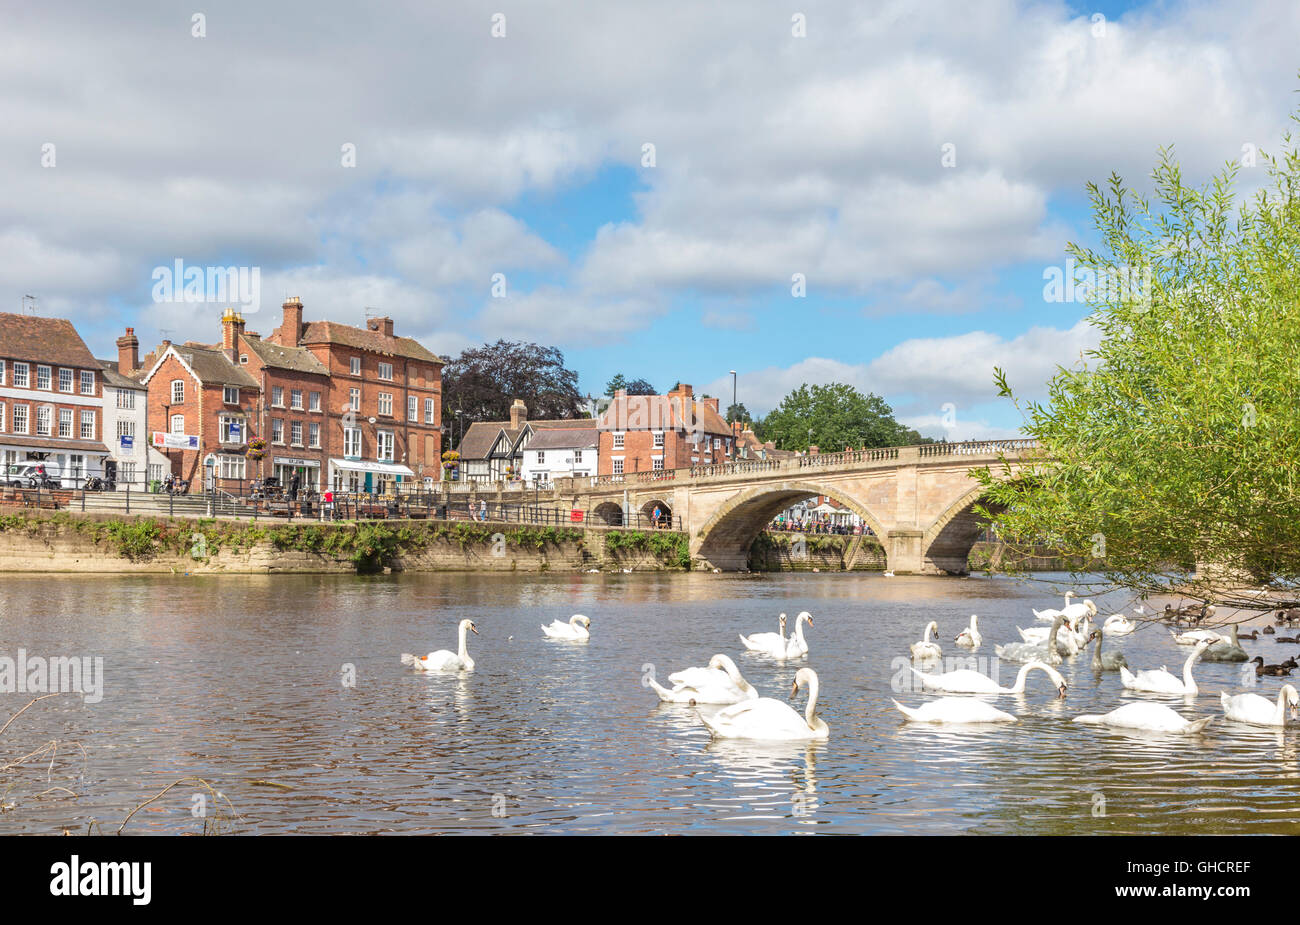 The riverside town of Bewdley, Worcestershire, England, UK - Stock Image